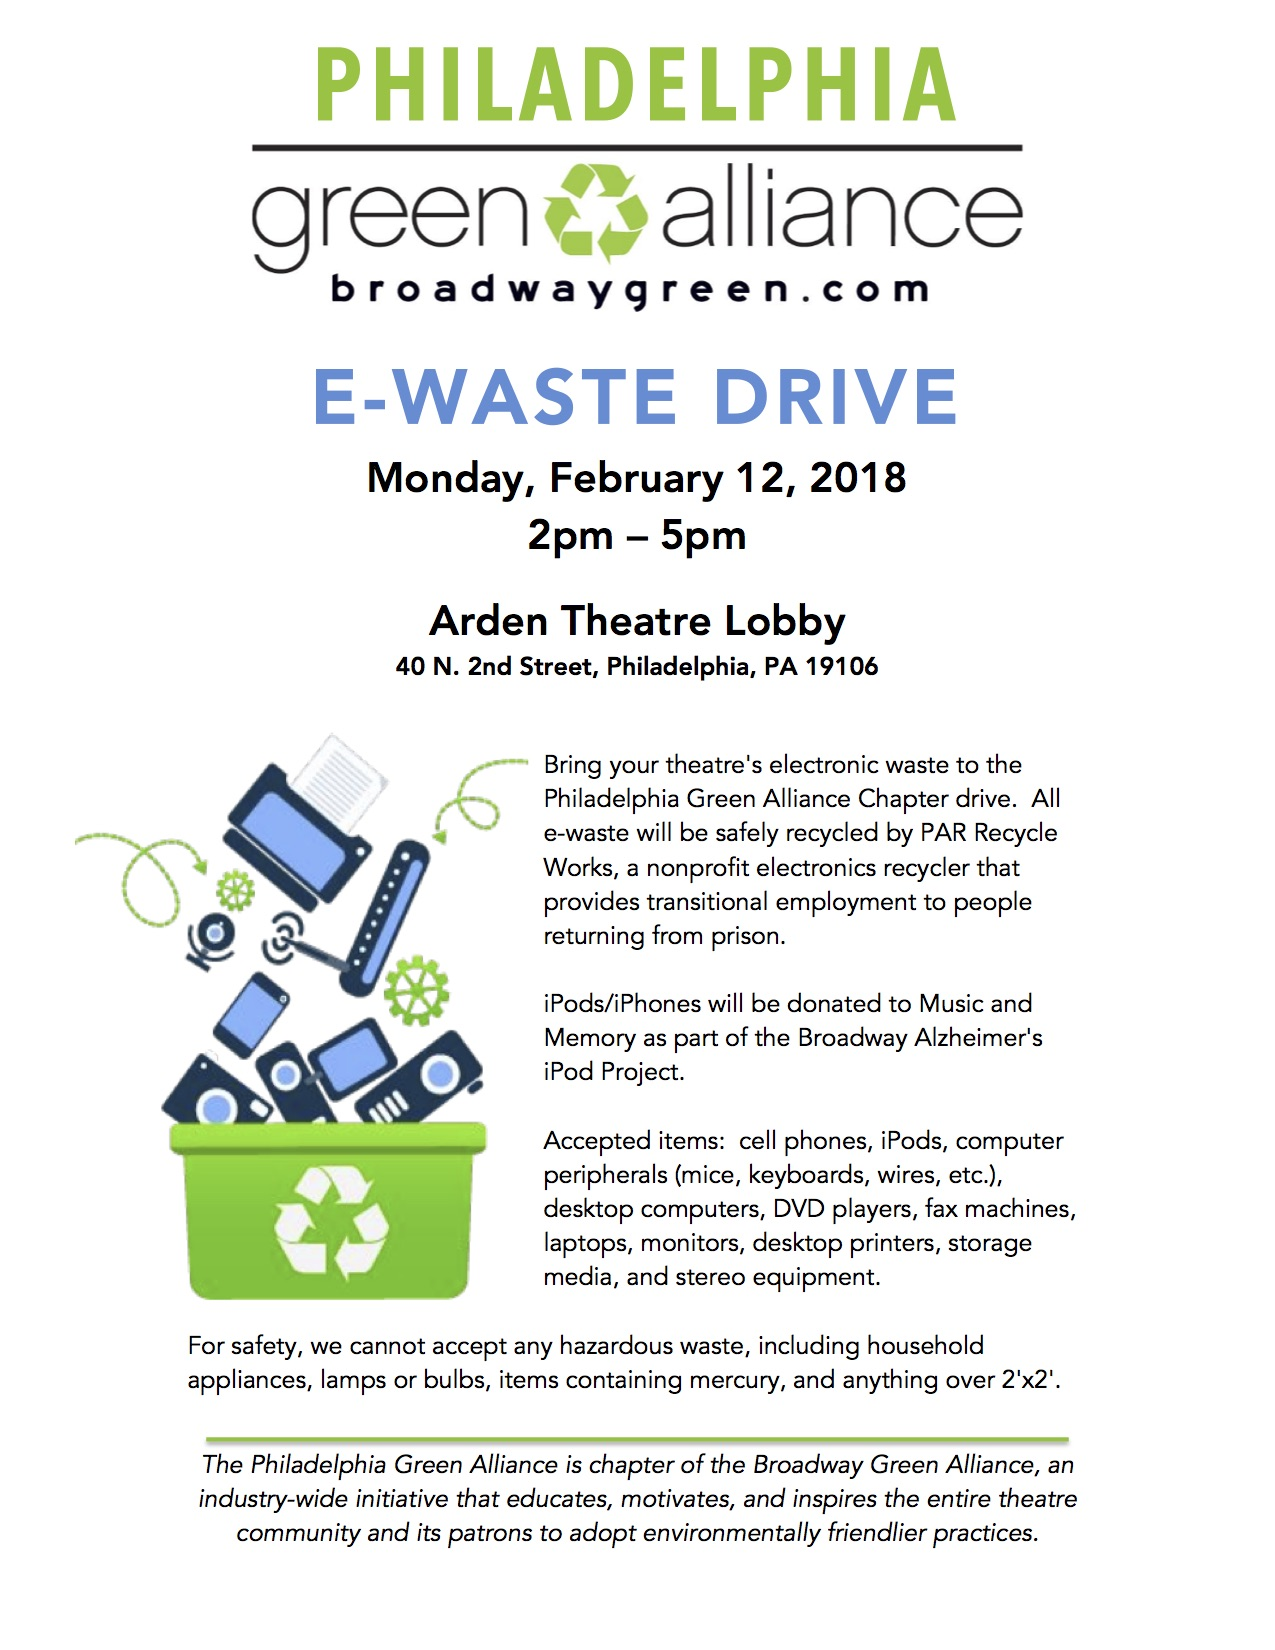 Philadelphia Green Alliance - E-Waste Drive 2018.jpg